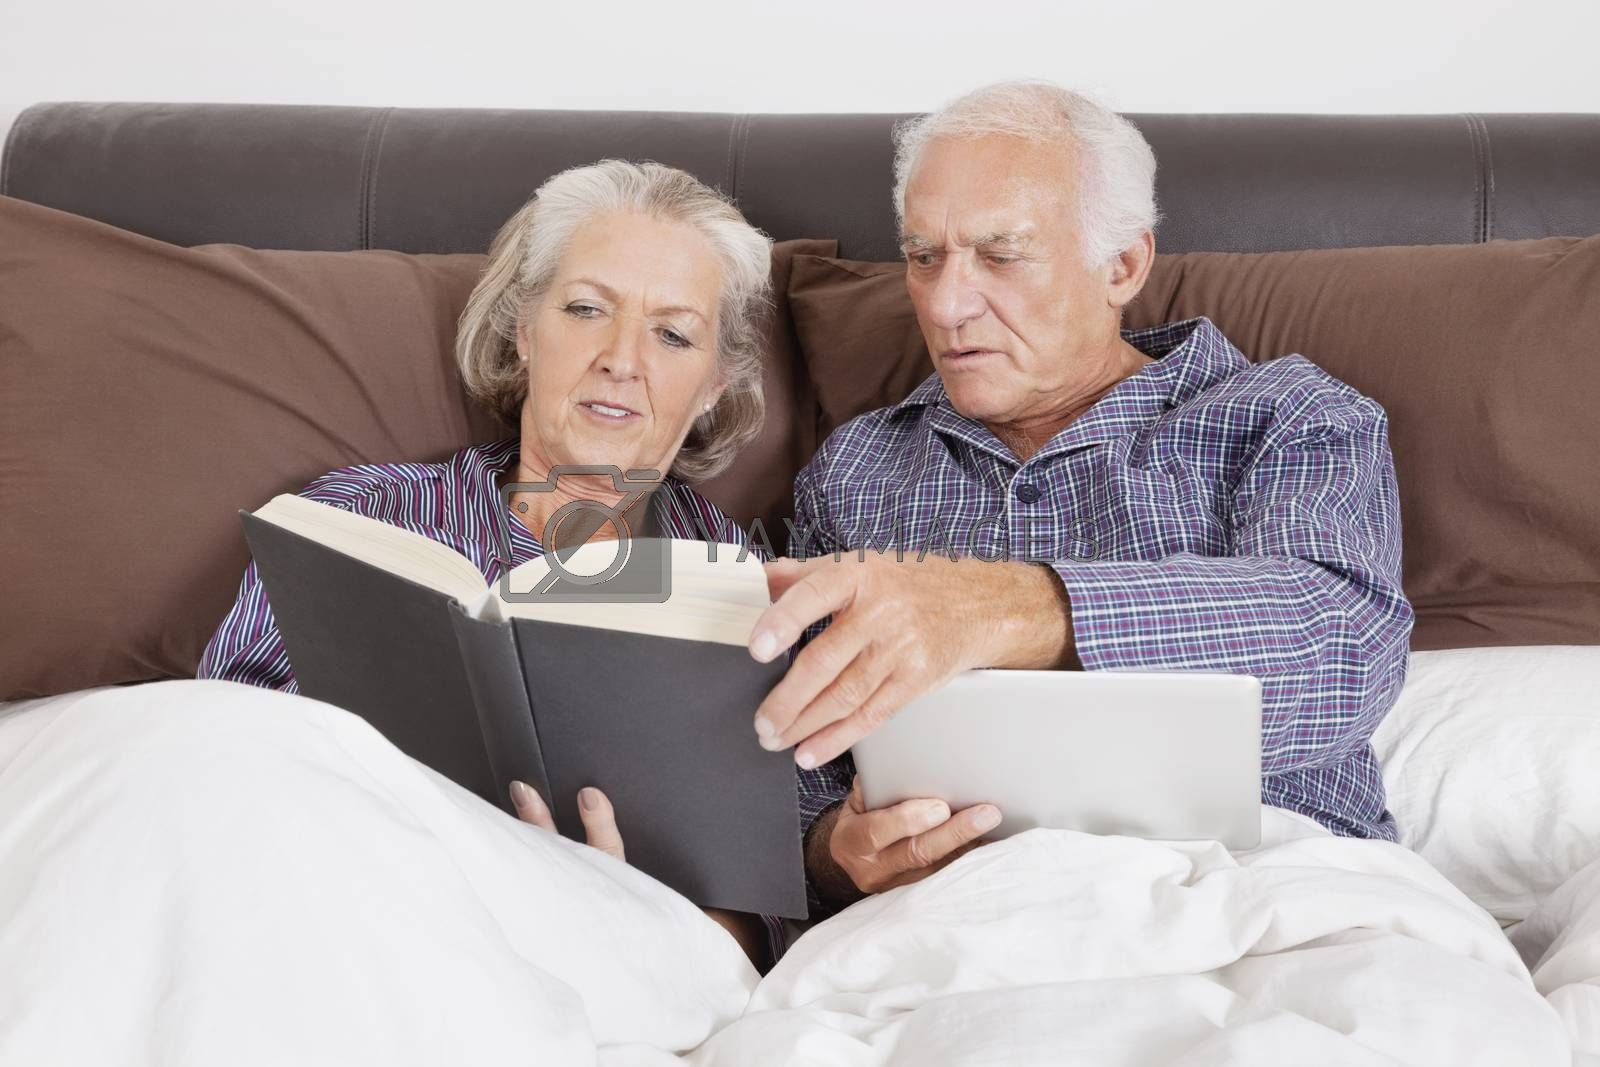 Senior couple with digital tablet reading book while lying on bed in room